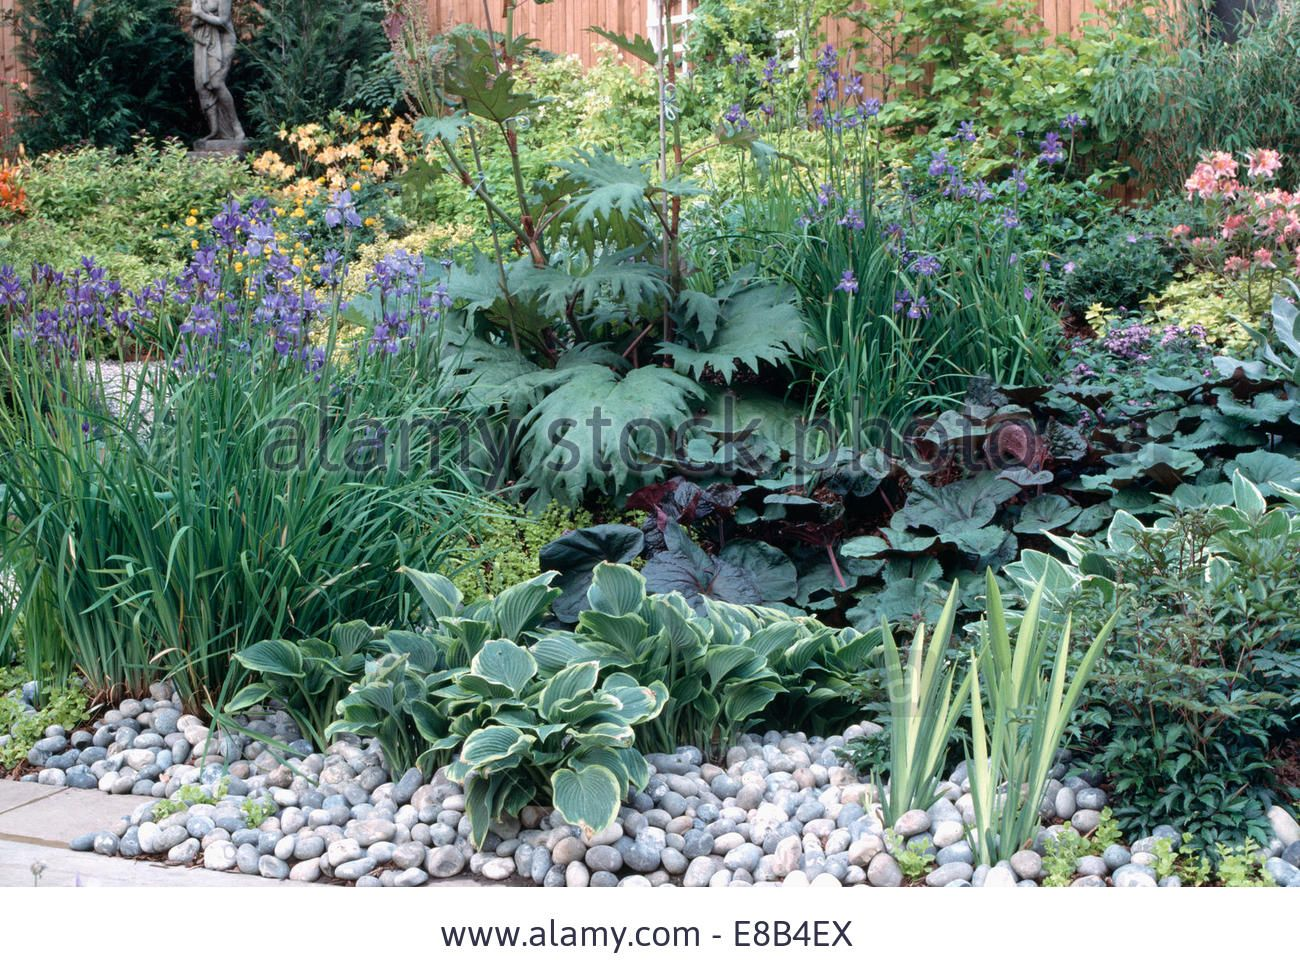 Blue Iris And Hosta Mulched With Pebbles In Well Stocked Garden Stock Photo, Picture And Royalty Free Image. Pic. 74003746